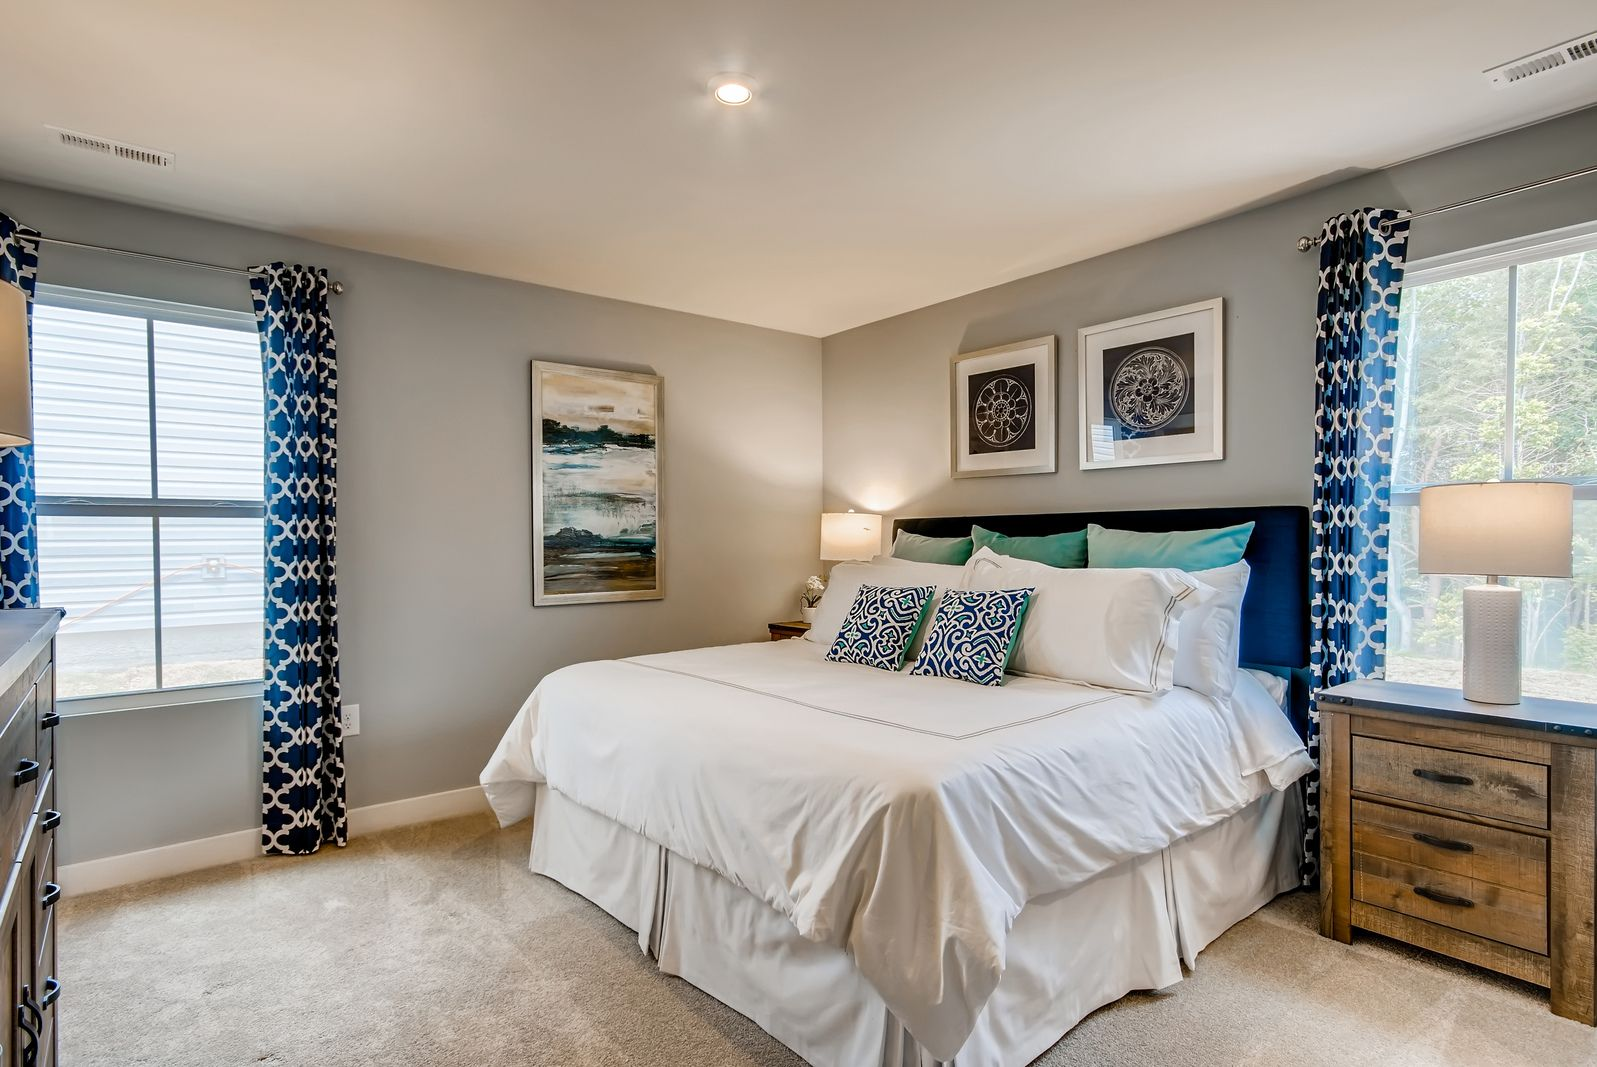 Bedroom featured in the Aruba By Ryan Homes in Rochester, NY